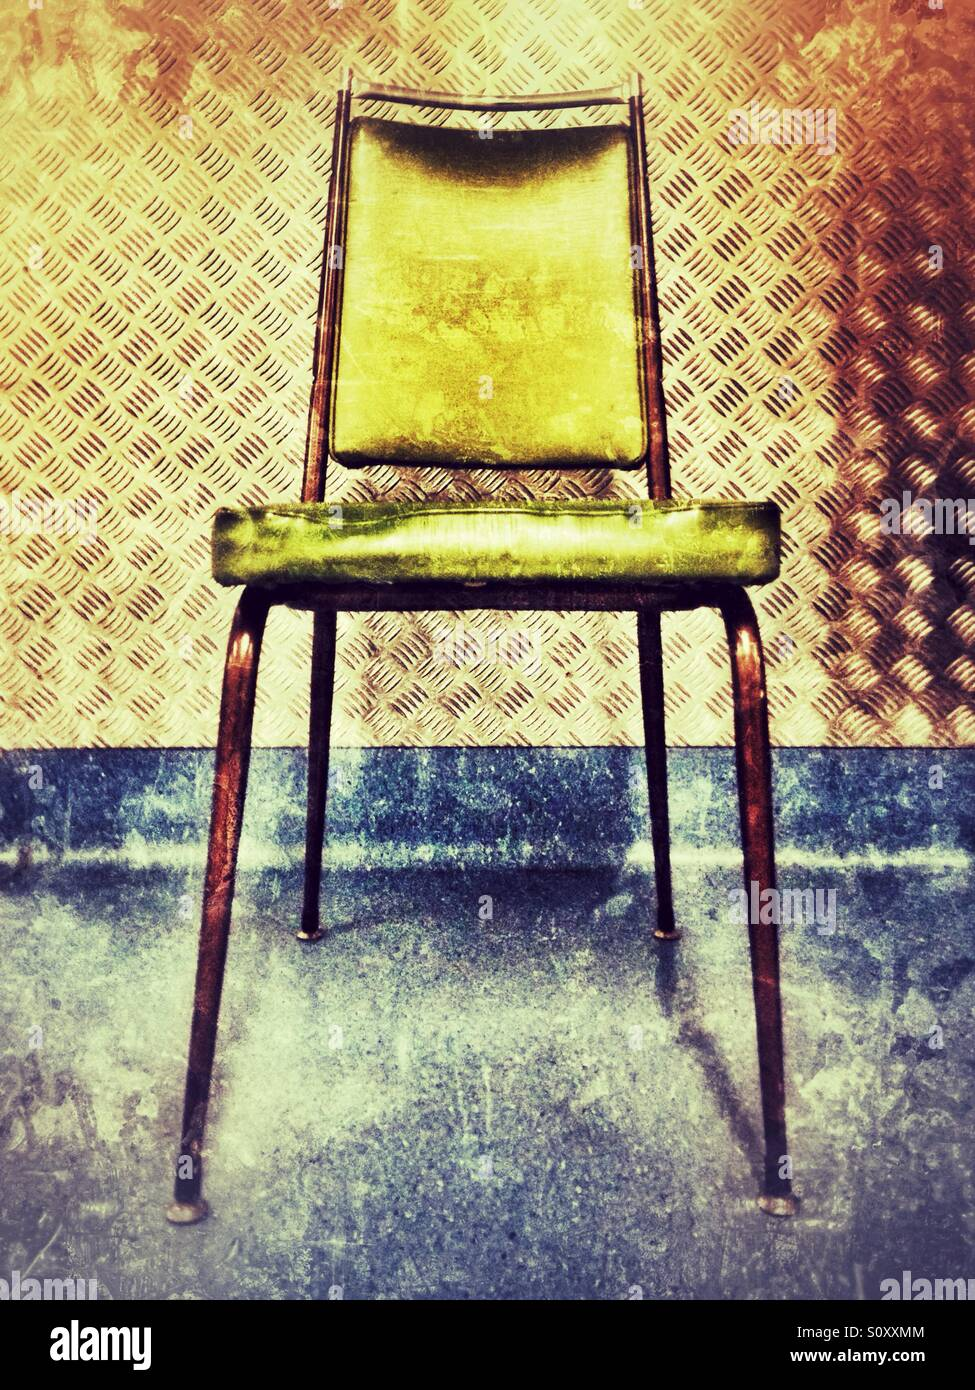 Chair against a wall. - Stock Image